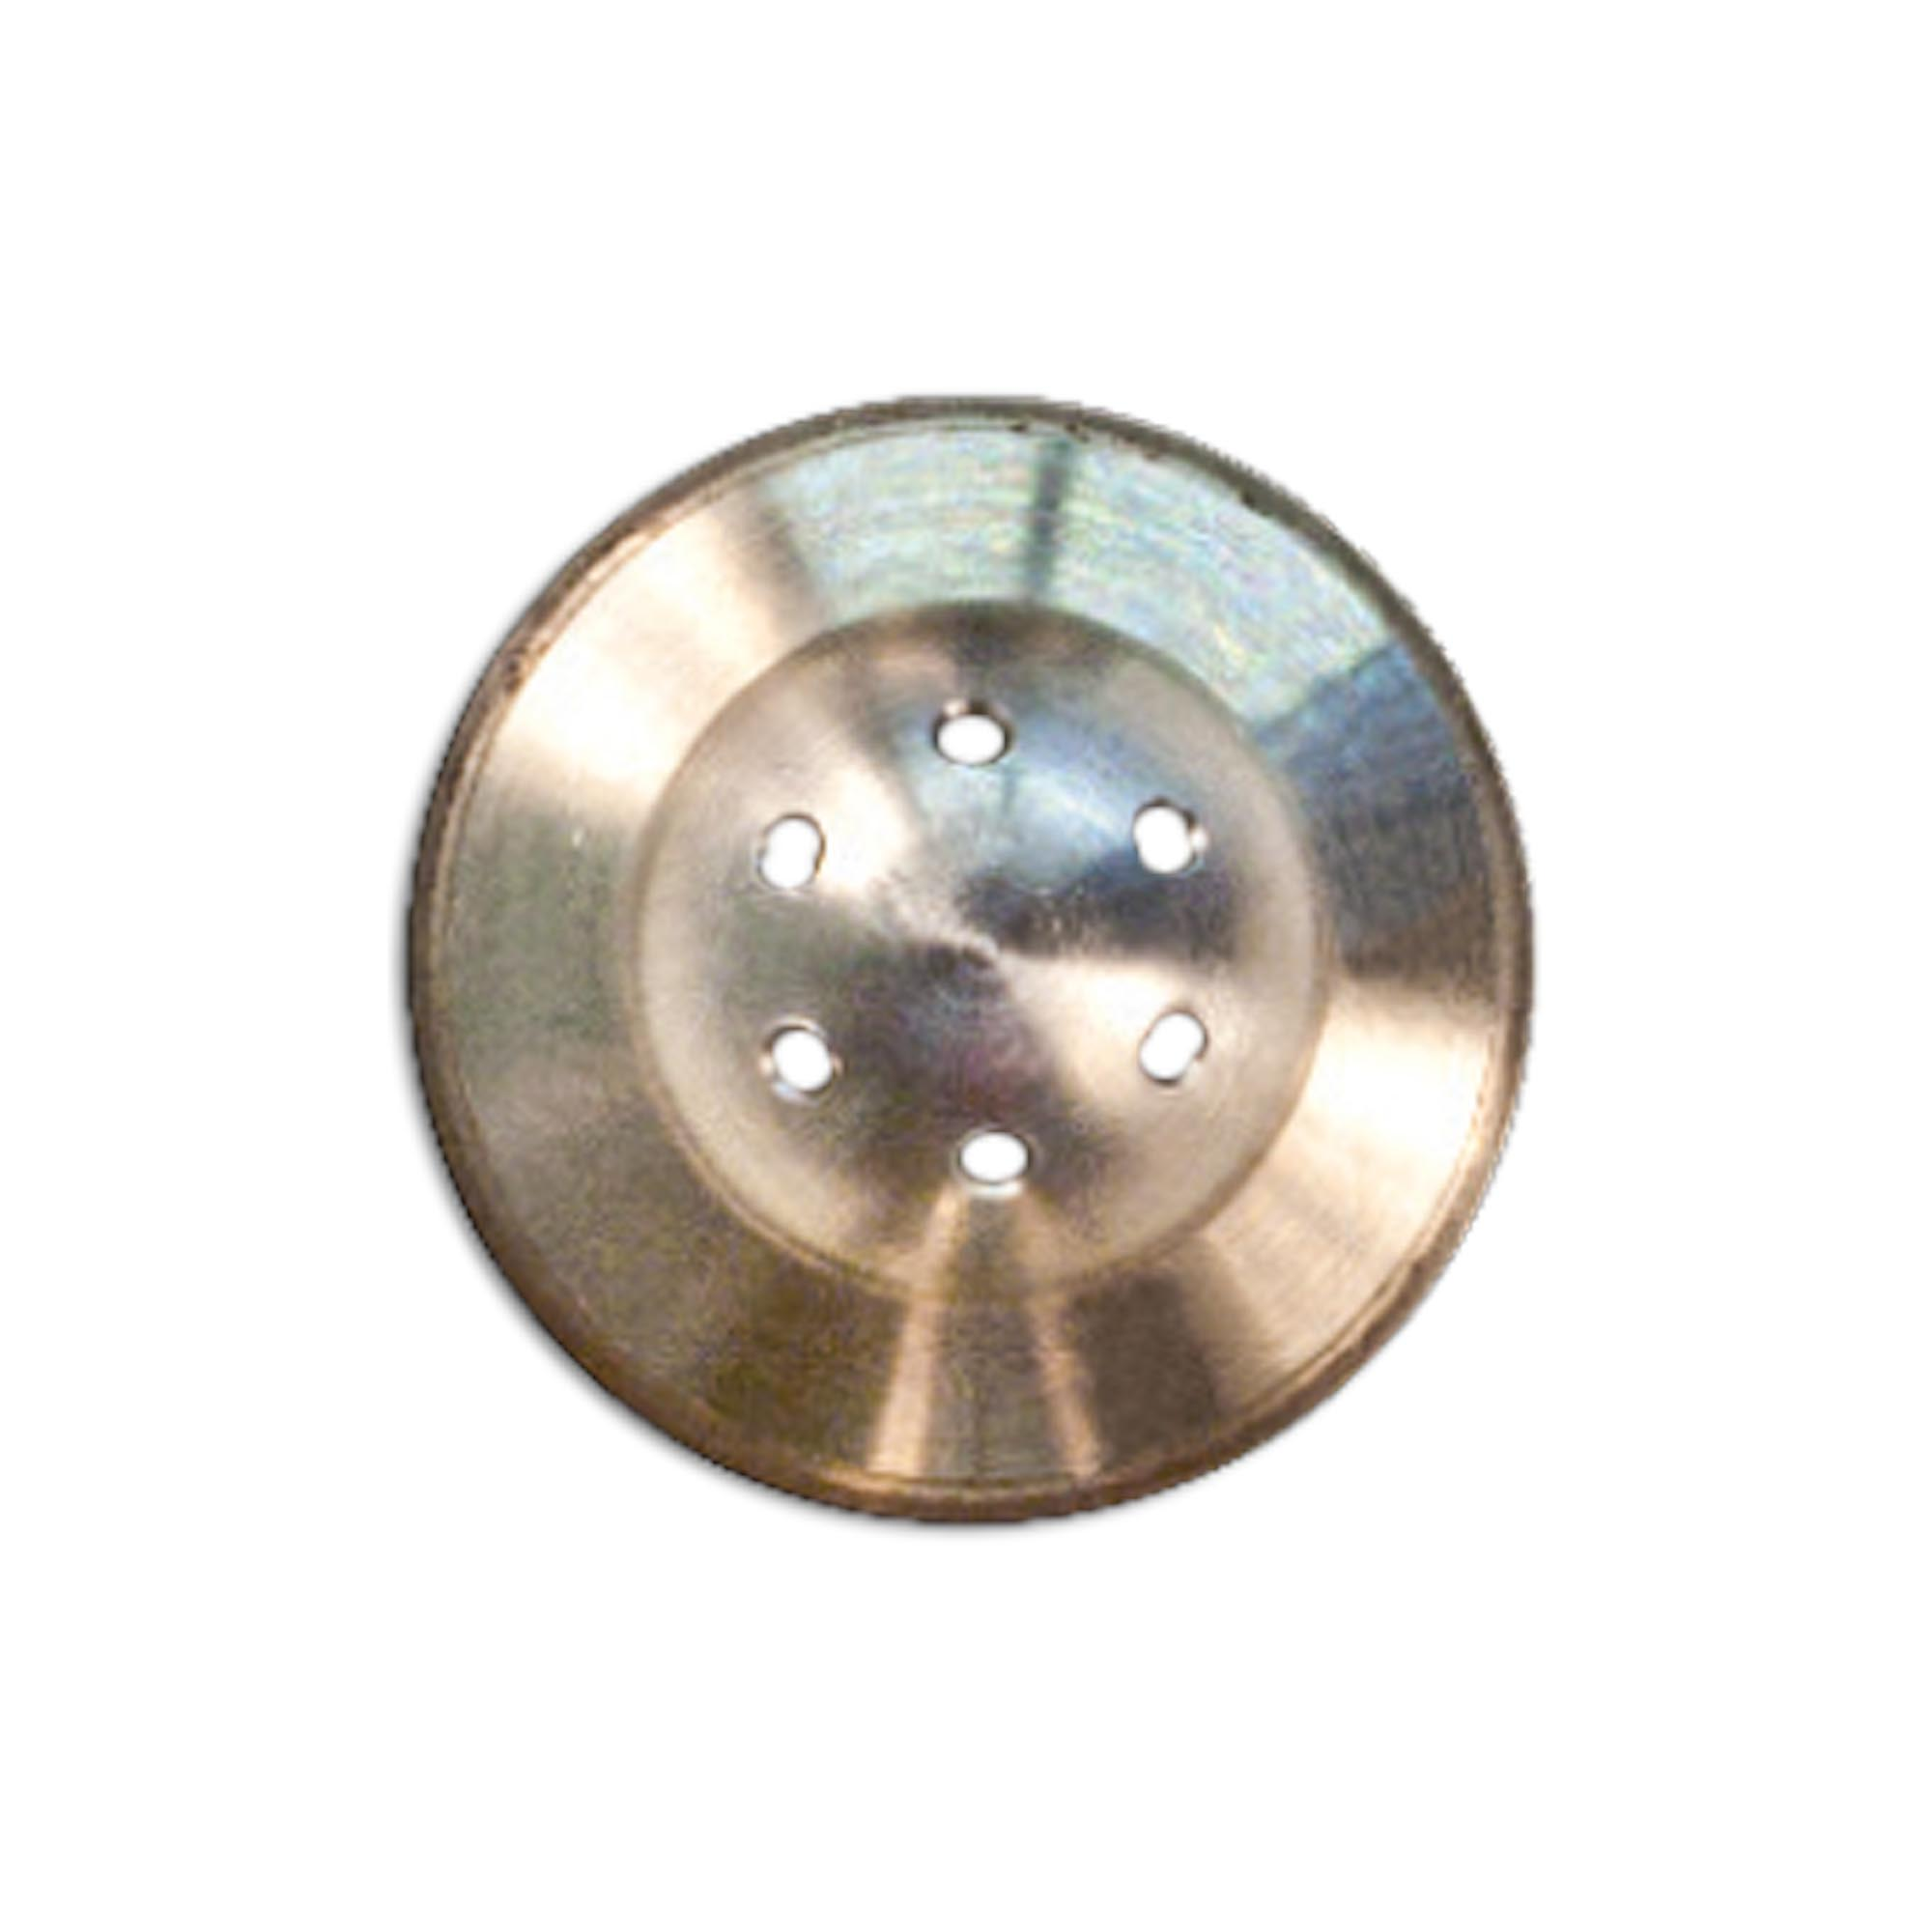 Model 901142-W20 Air Cap for AW2020SS